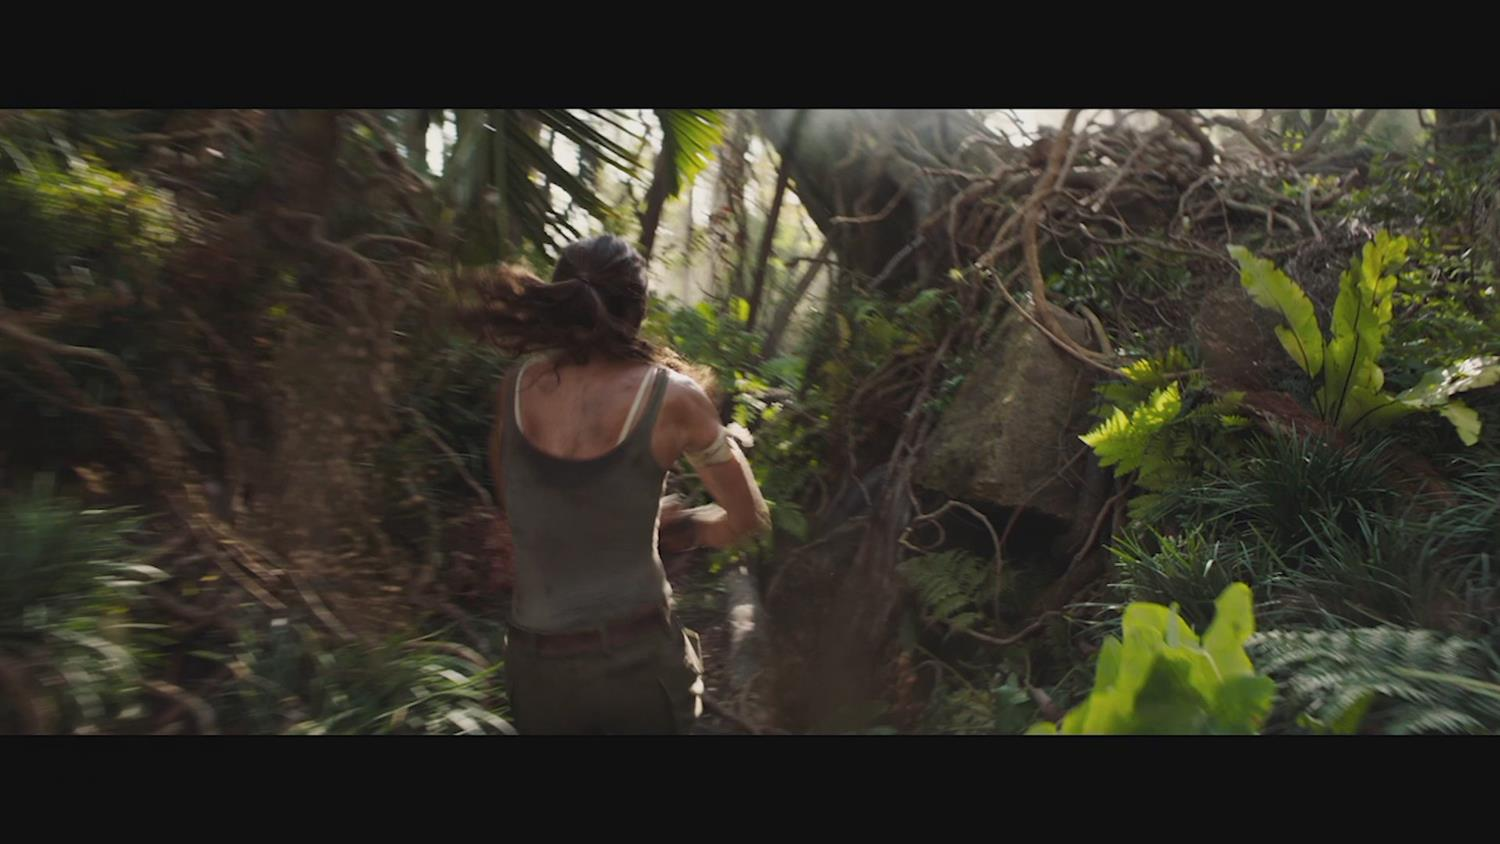 The Tomb Raider Cast Attempts To Solve Puzzles and Riddles